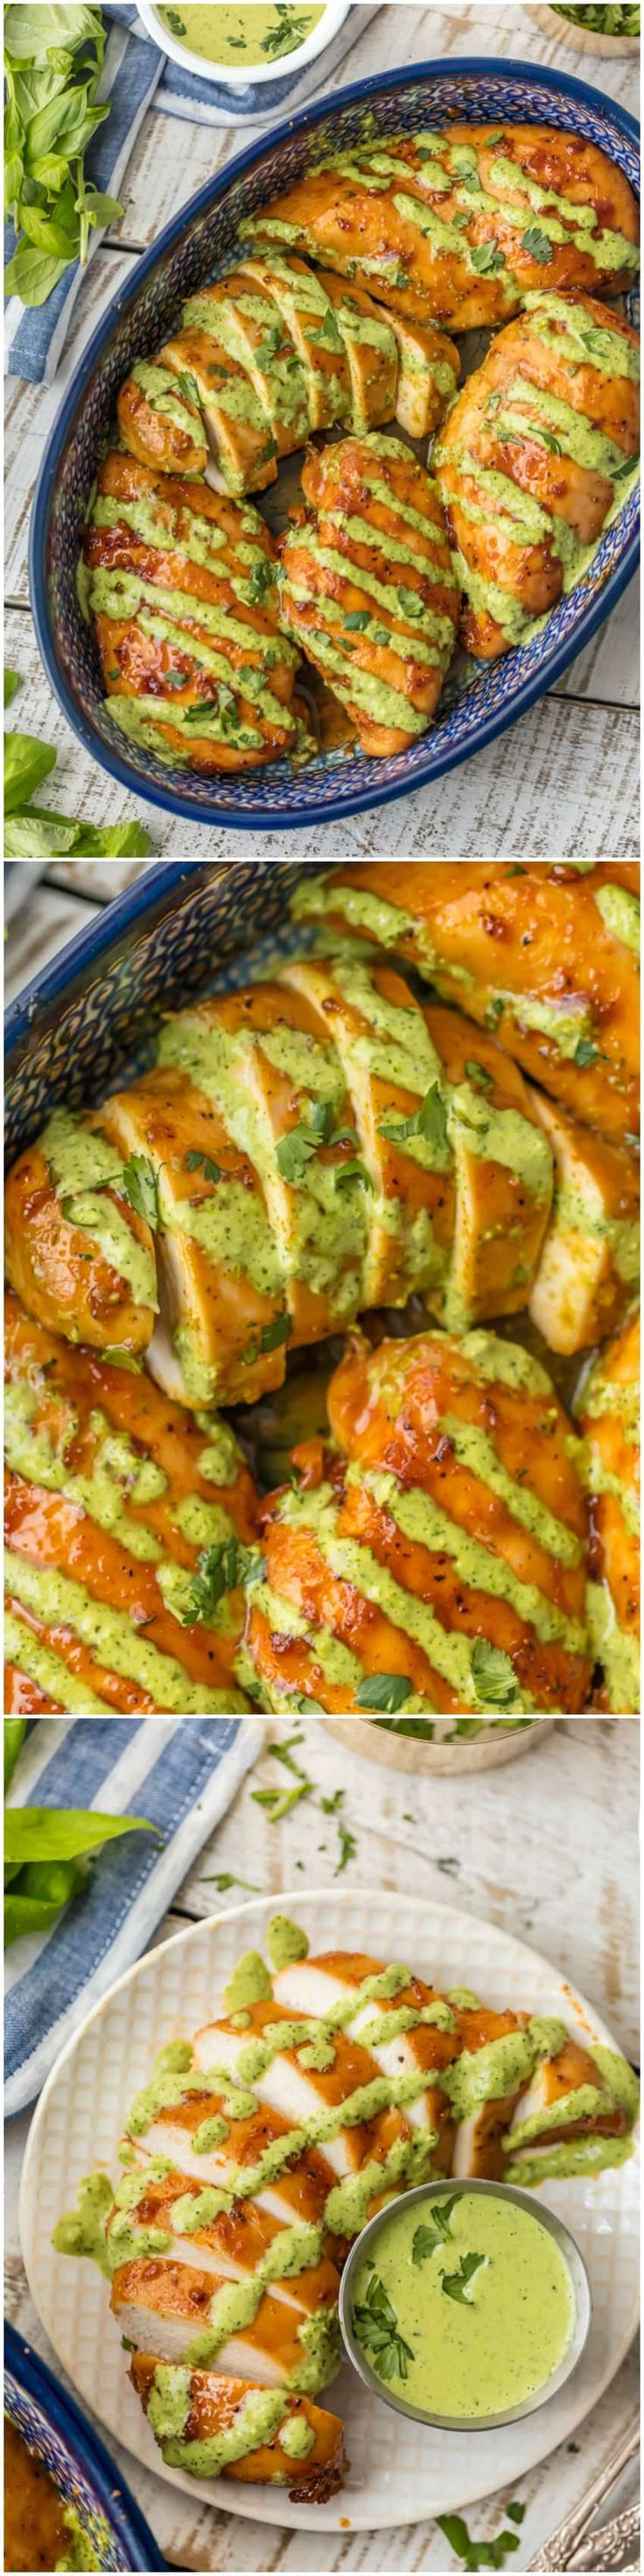 This PERUVIAN CHICKEN WITH GREEN SAUCE is one of our favorite easy weeknight meals. This sauce is EVERYTHING and has so much flavor! This is a must make chicken recipe. via @beckygallhardin